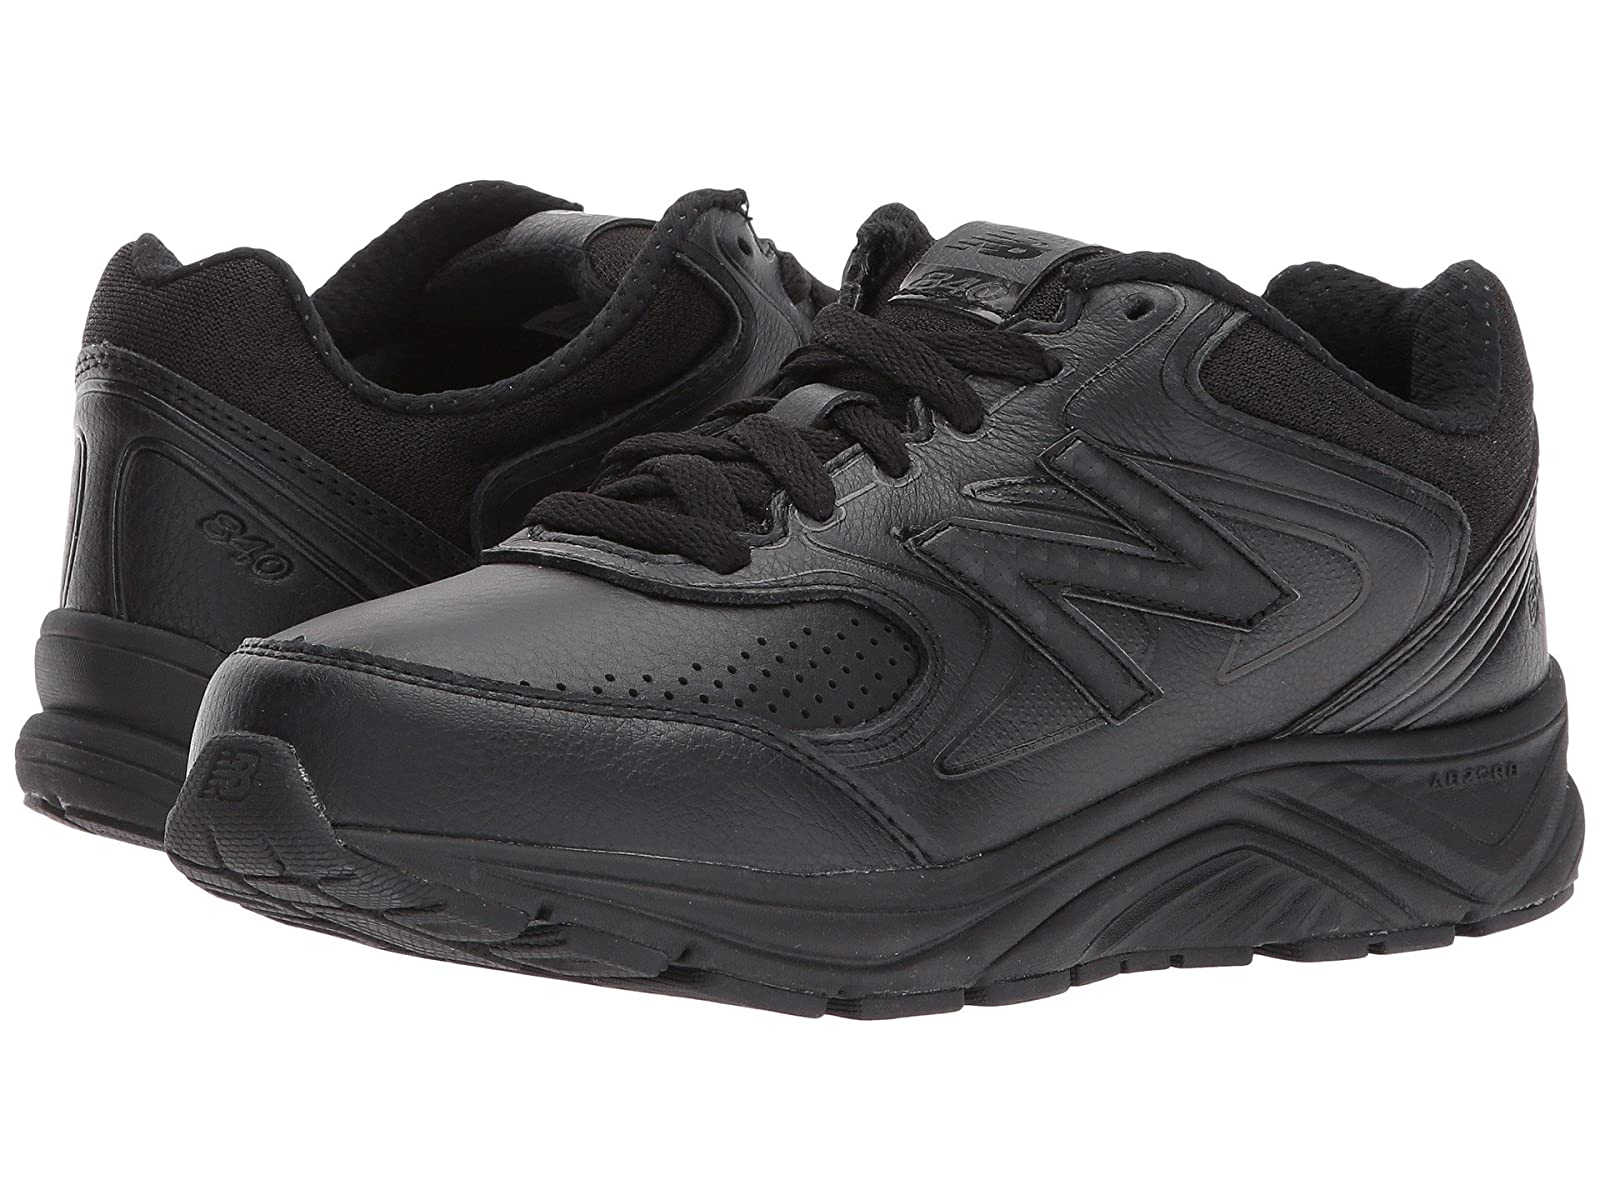 New Balance WW840v2Atmospheric grades have affordable shoes